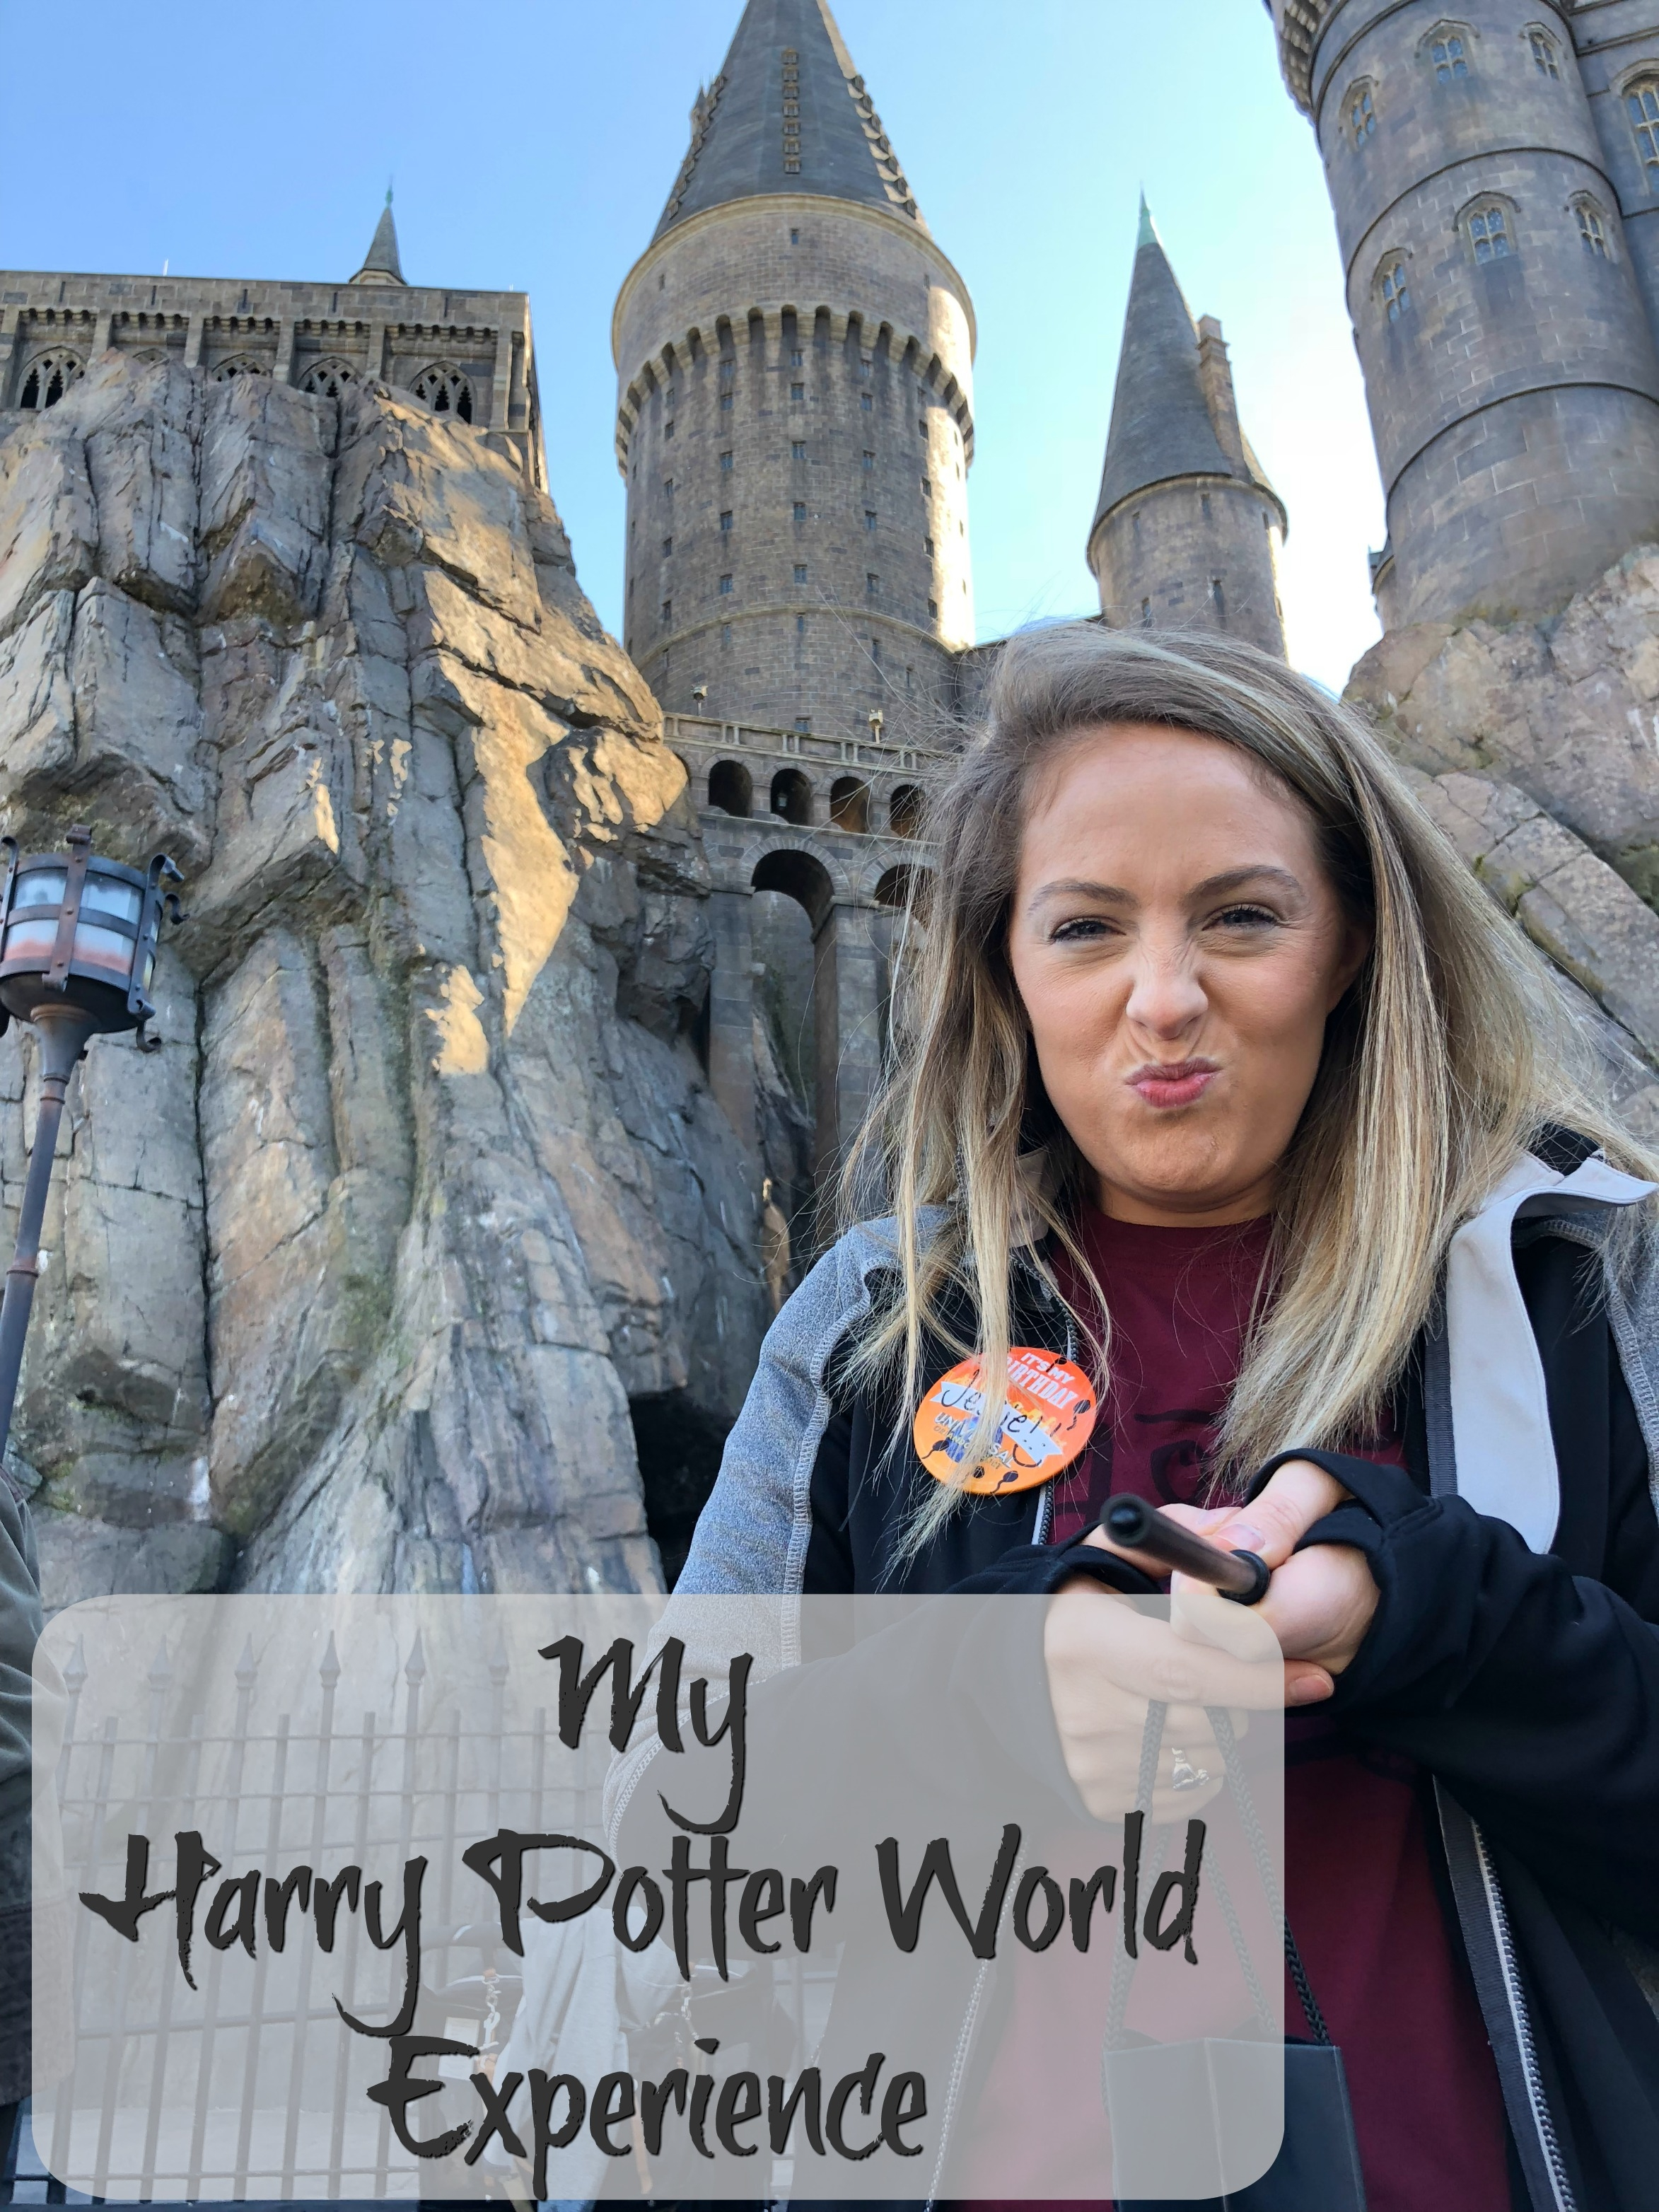 My Harry Potter World Experience